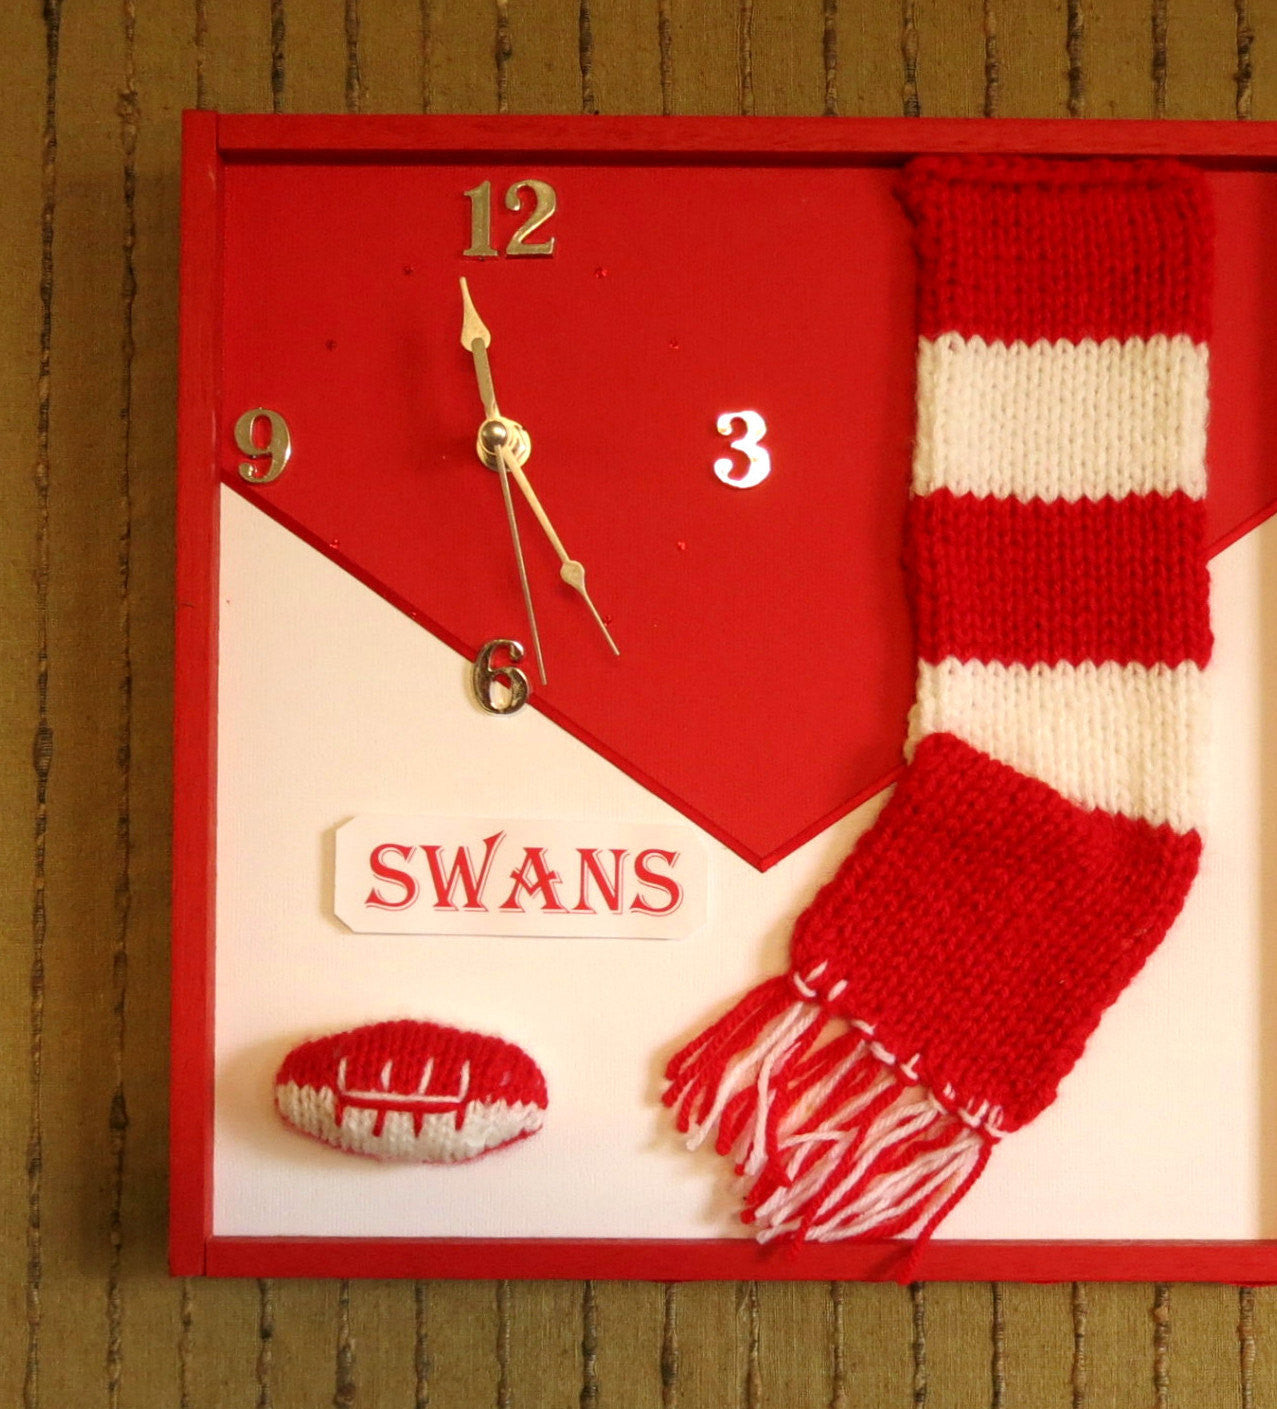 Sydney-Swans-AFL-Football-Nchanted-Gifts